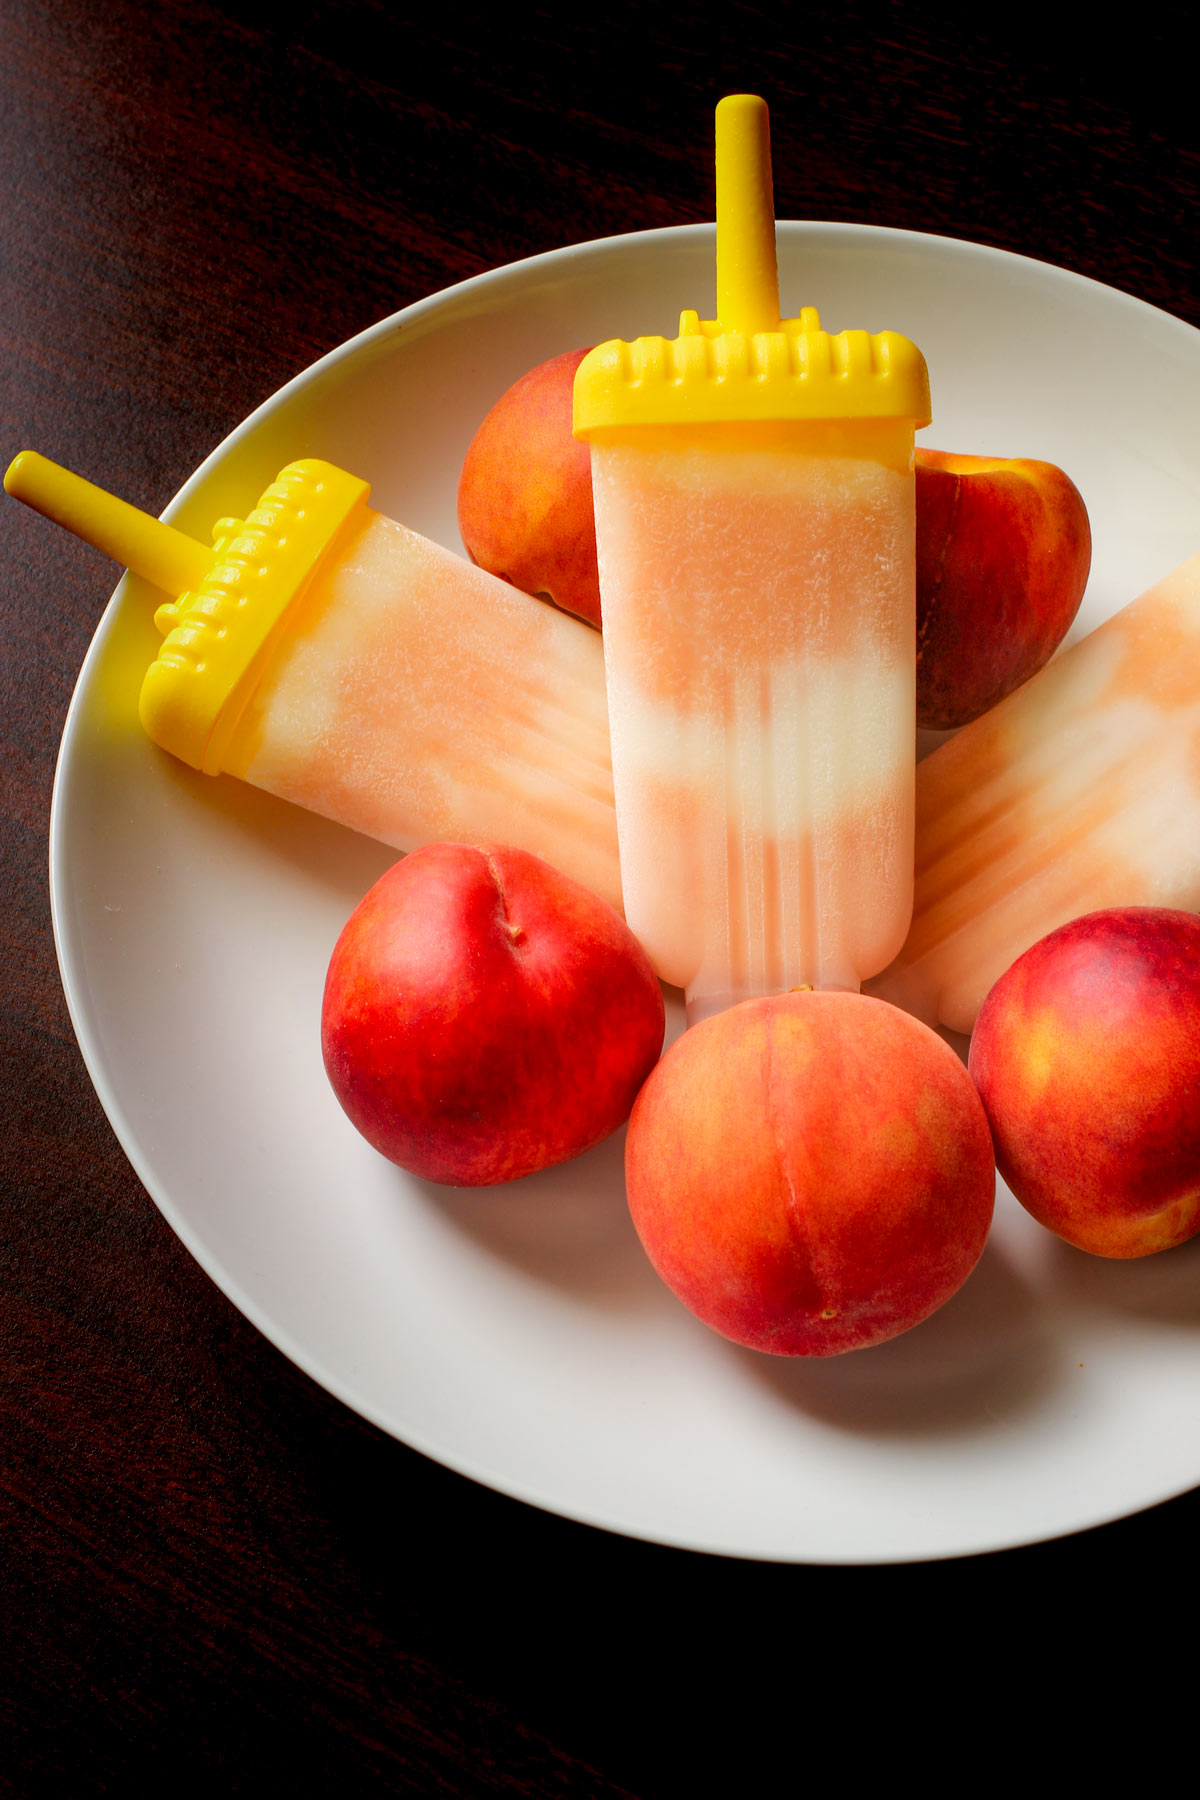 yogurt popsicles in molds in bowl of peaches.